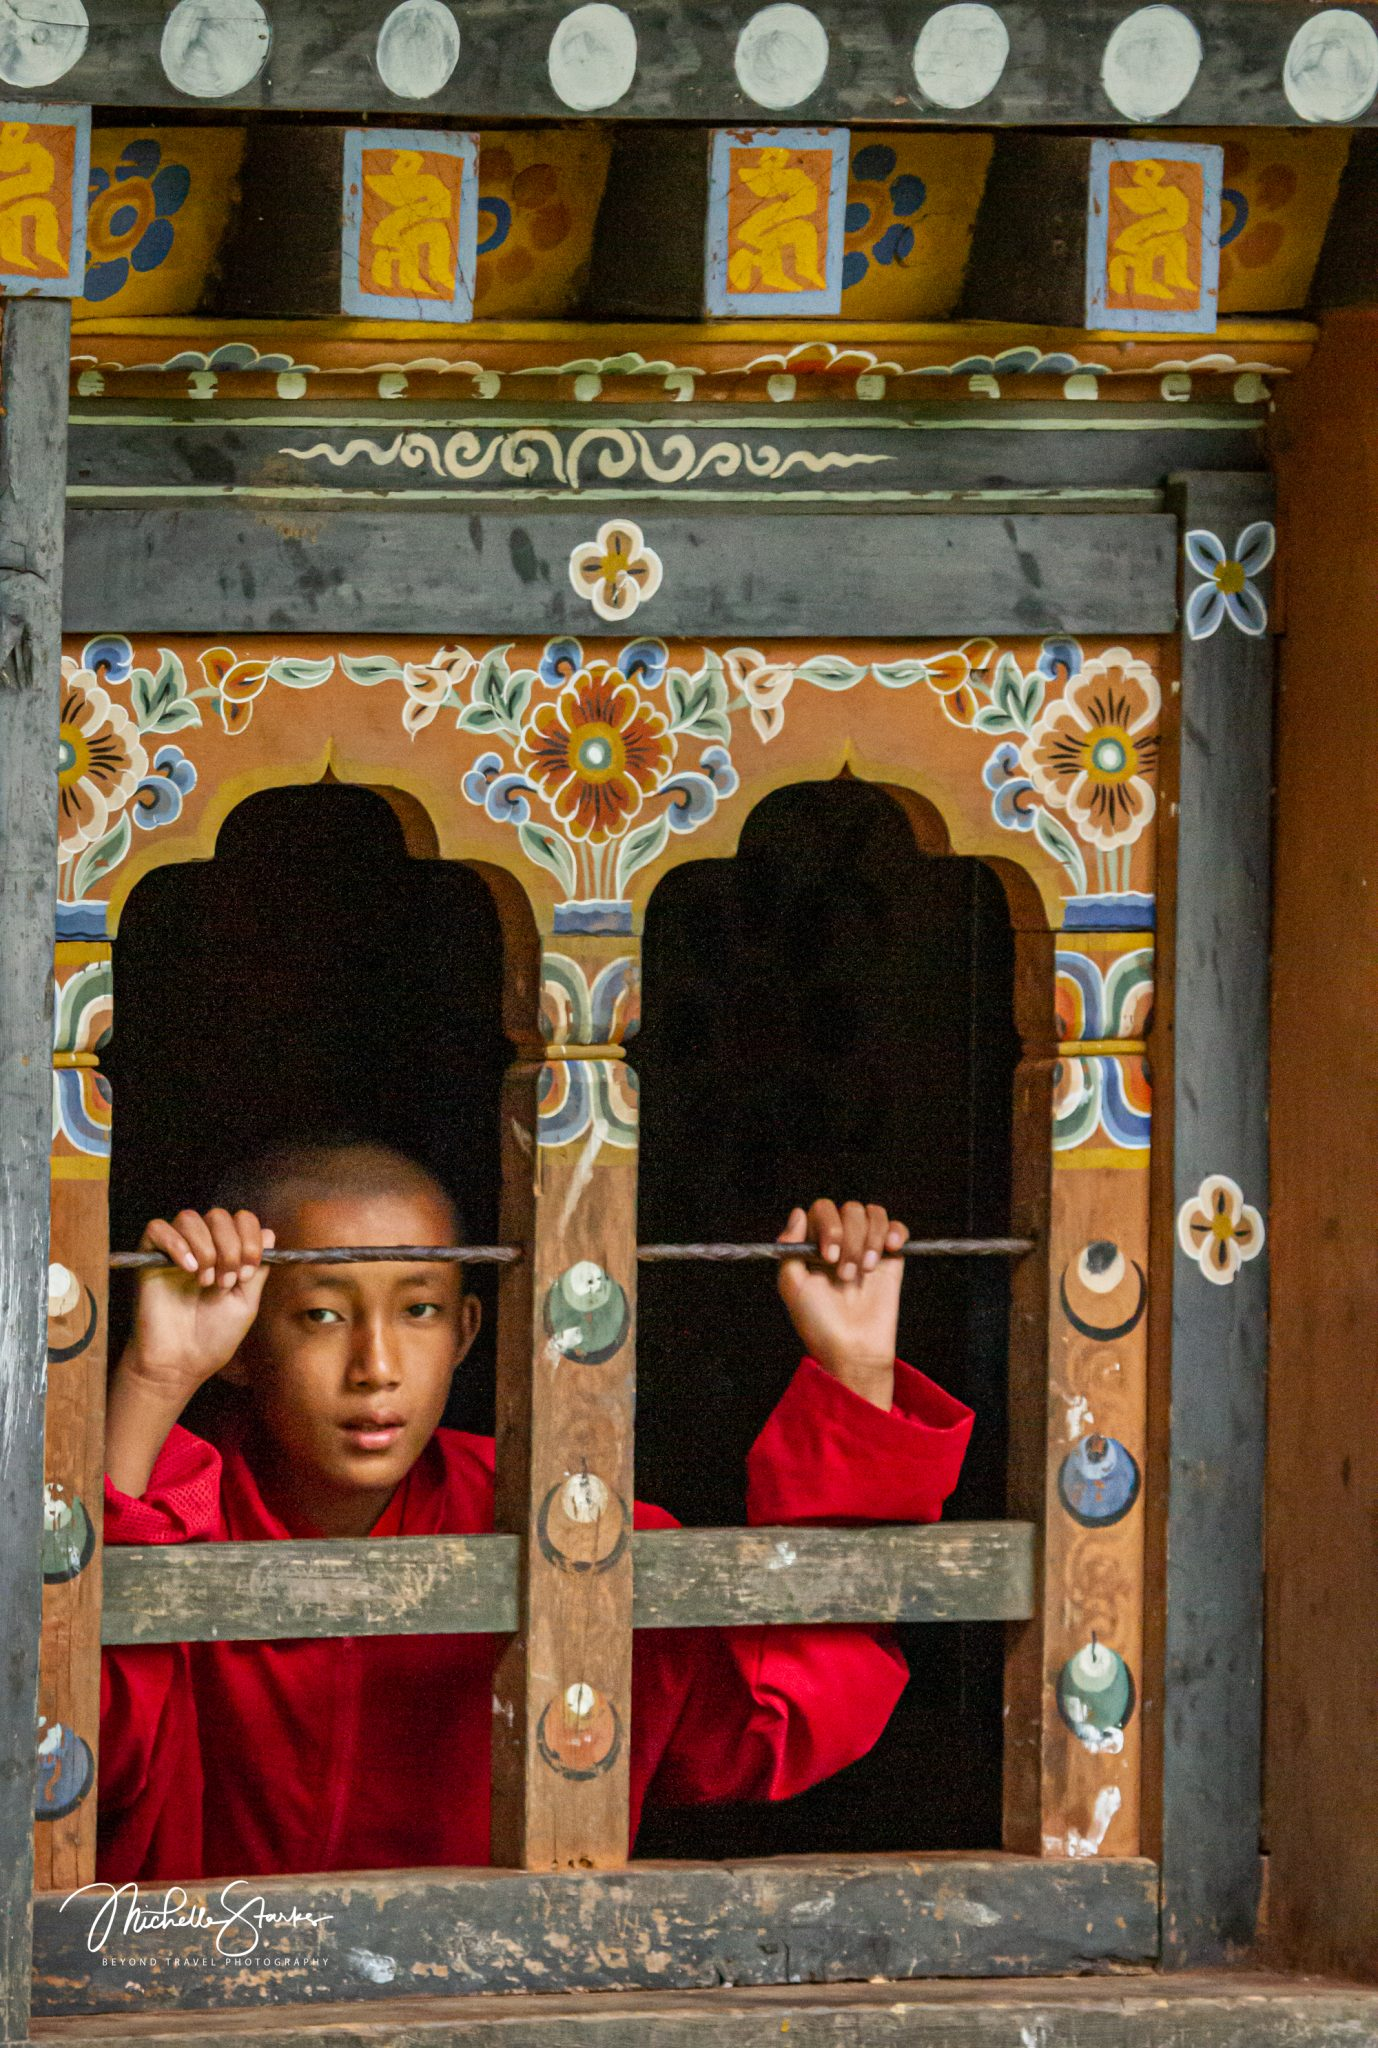 Monk in a Window, Bhutan